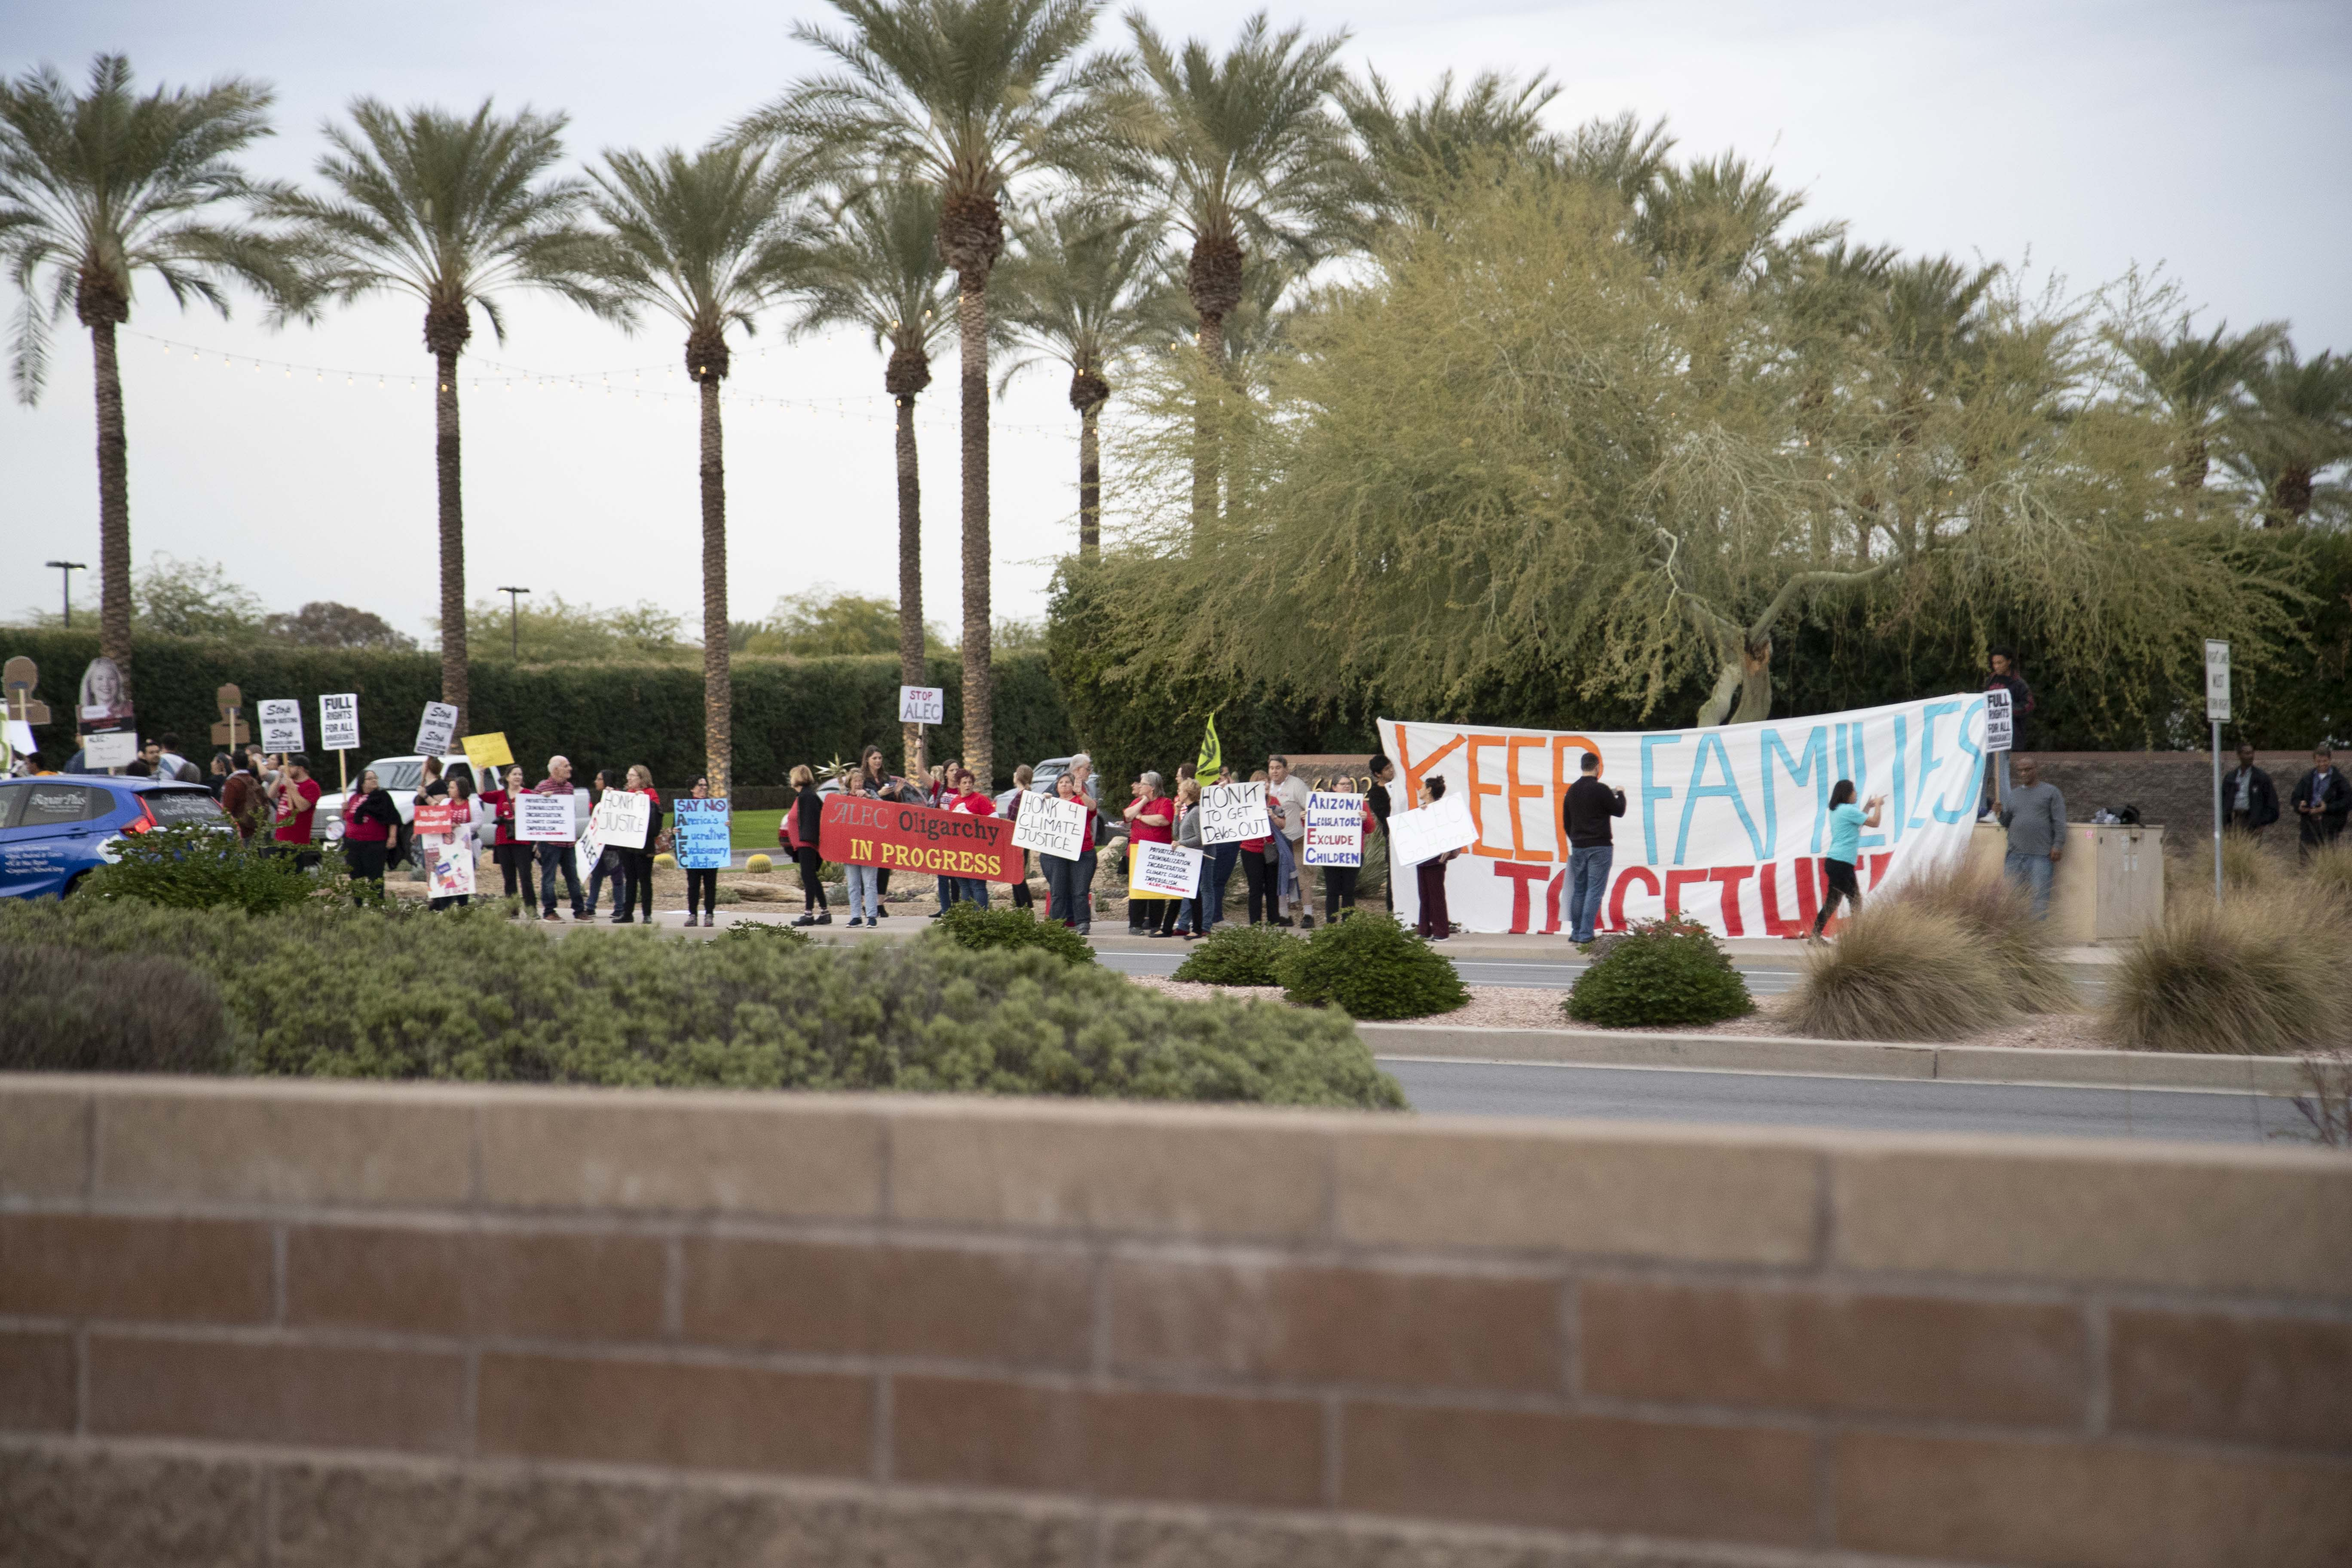 Arizona teachers and local residents protest ALEC meeting